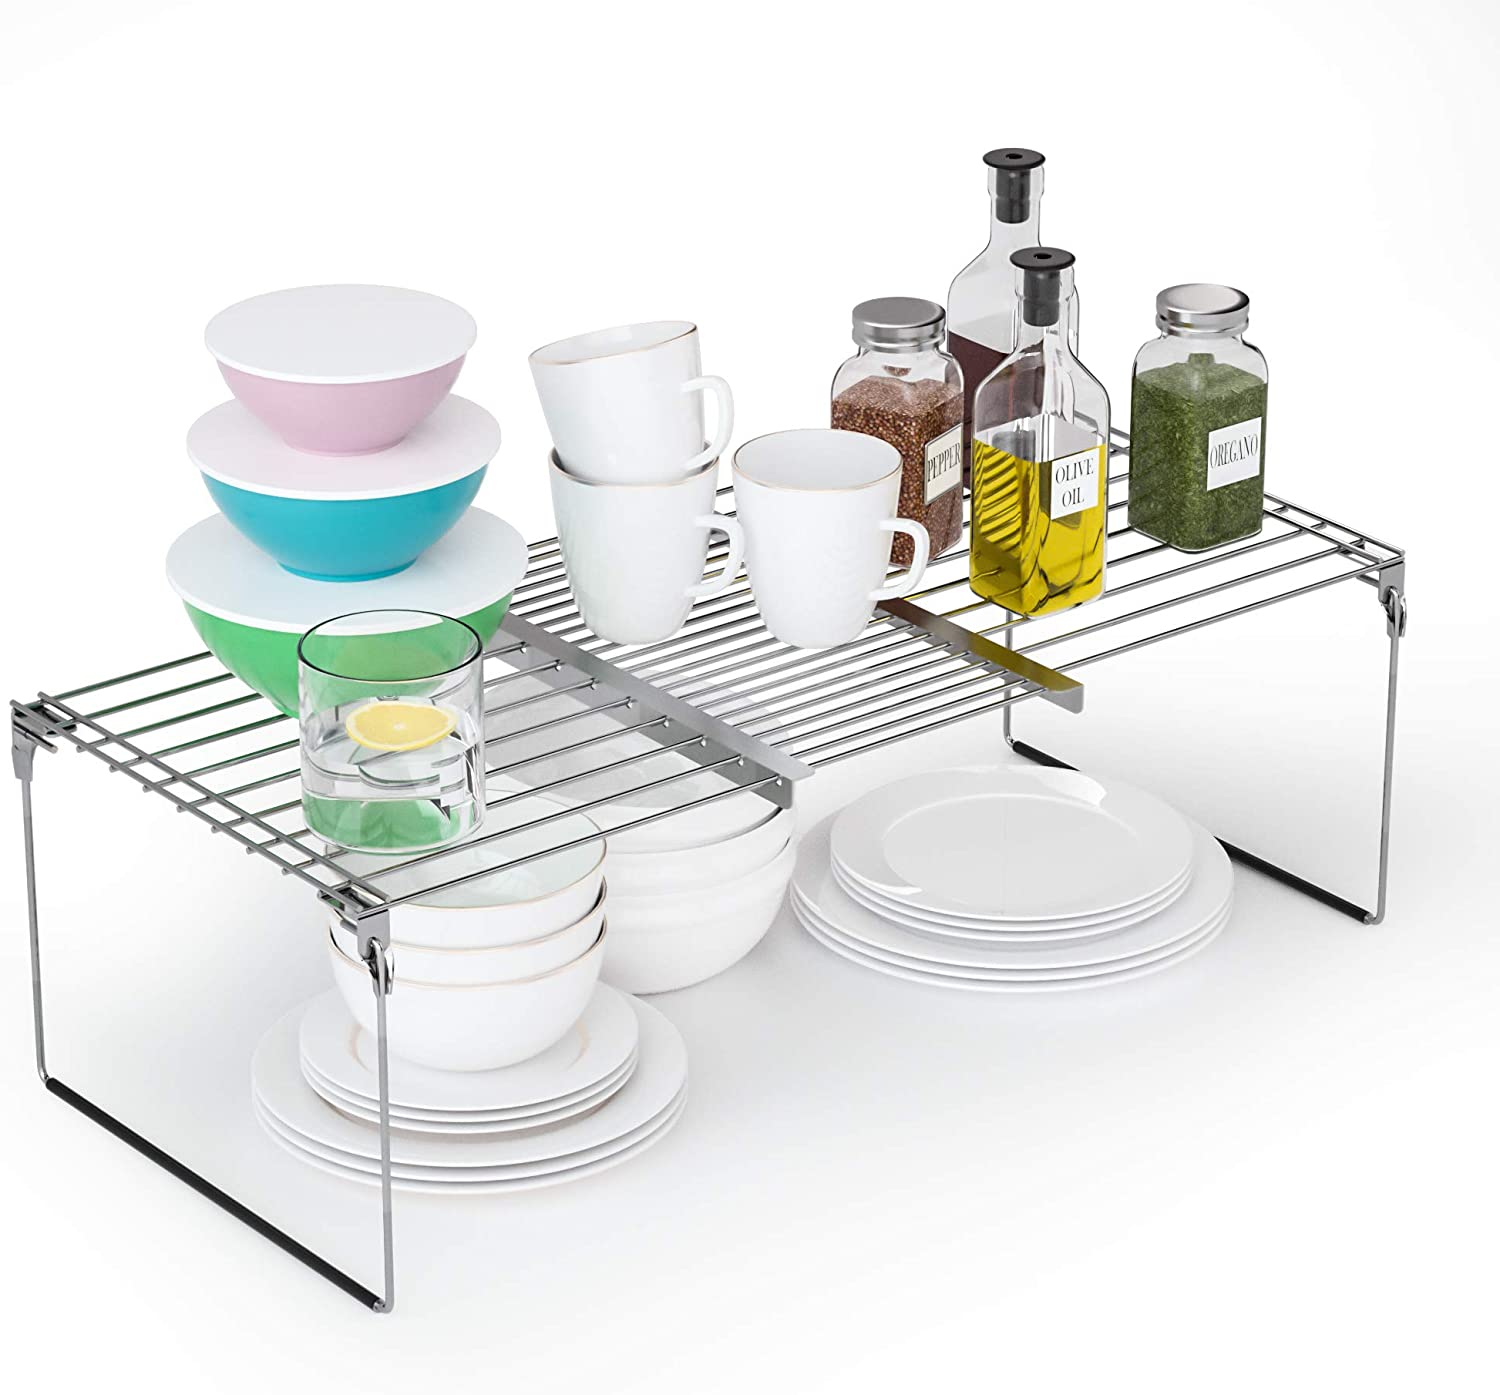 2 in 1 Expandable Cabinet Shelf Organizer Kitchen Counter Shelves & Over The Sink Dish Drying Rack - Multipurpose Pantry Organizer for Cabinet, Countertop Organization,Stainless Steel